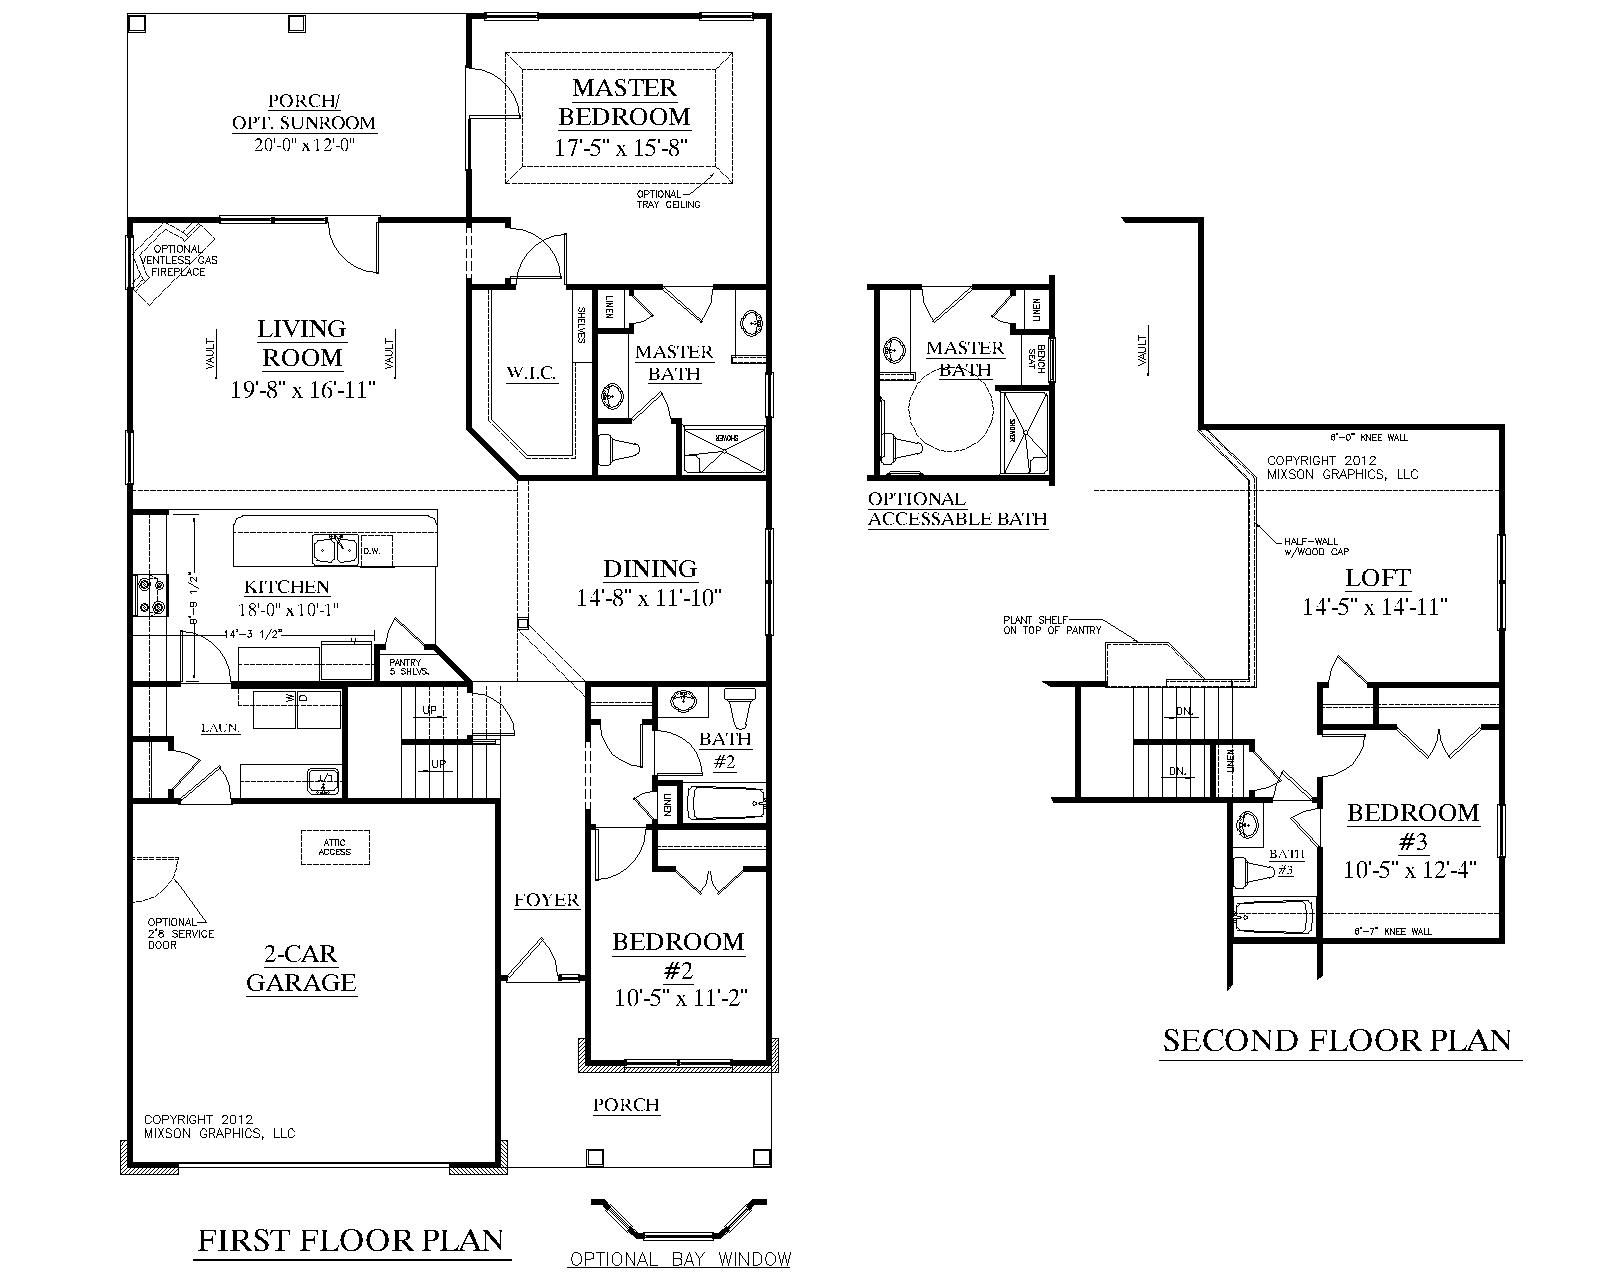 House plan 2224 kingstree floor plan traditional 1 1 2 for 2 level house plans